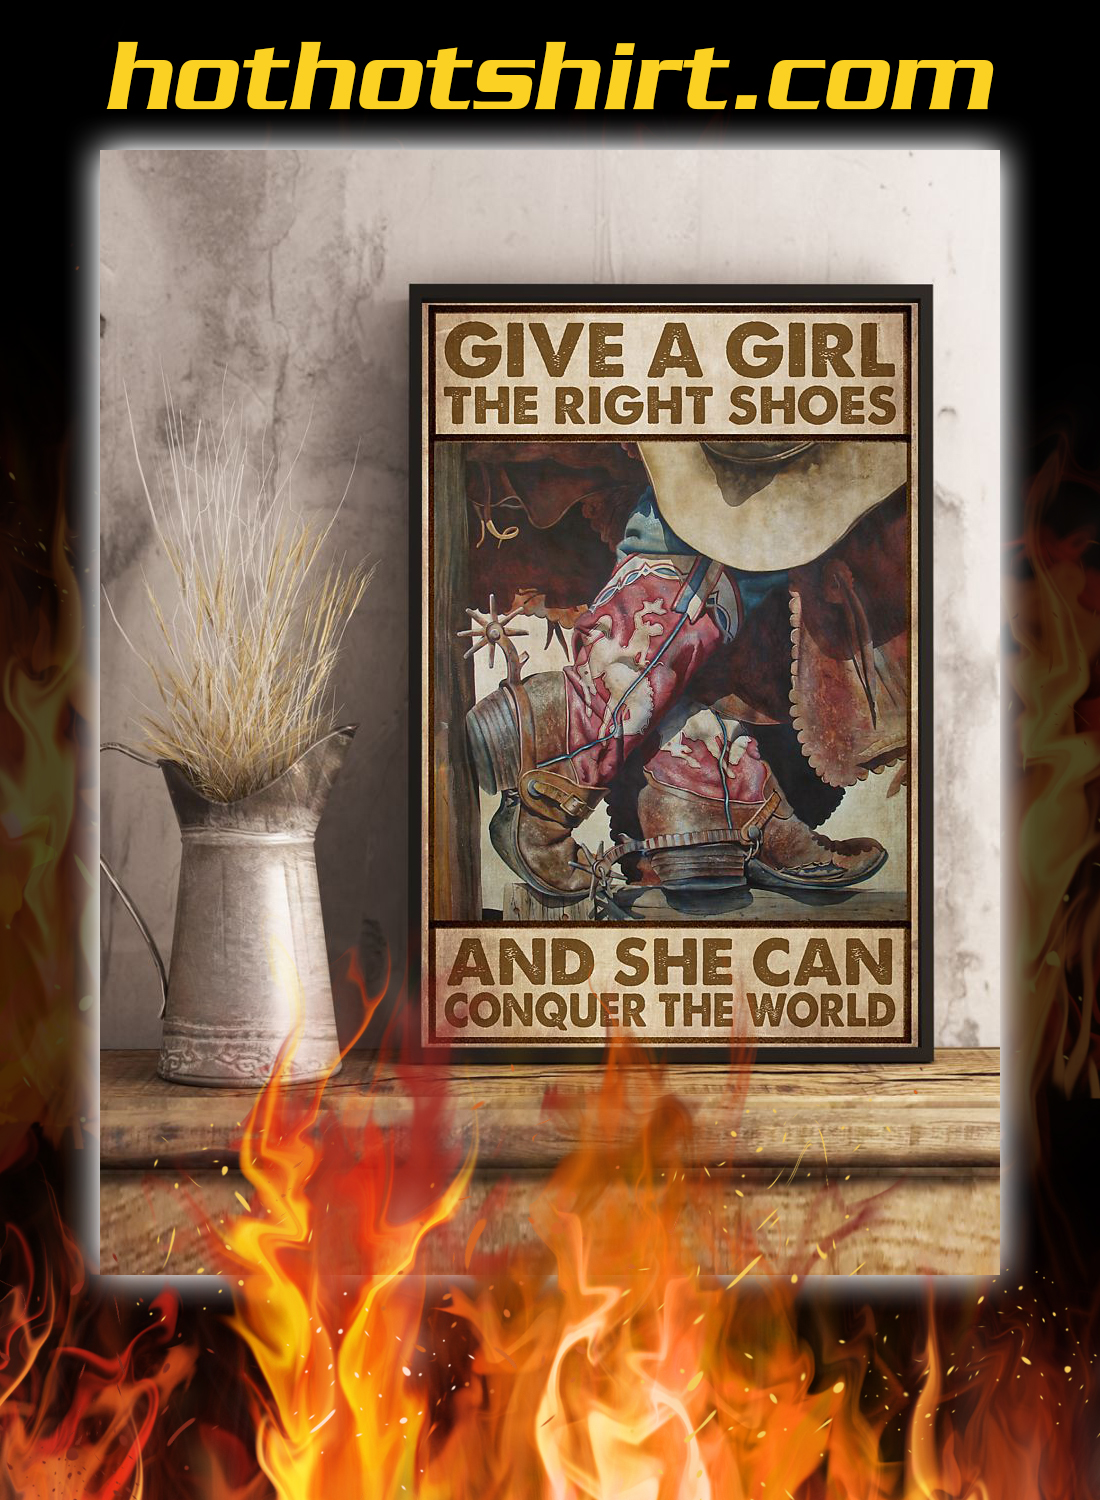 Cowgirl Give a girl the right shoes and she can conquer the world poster 3